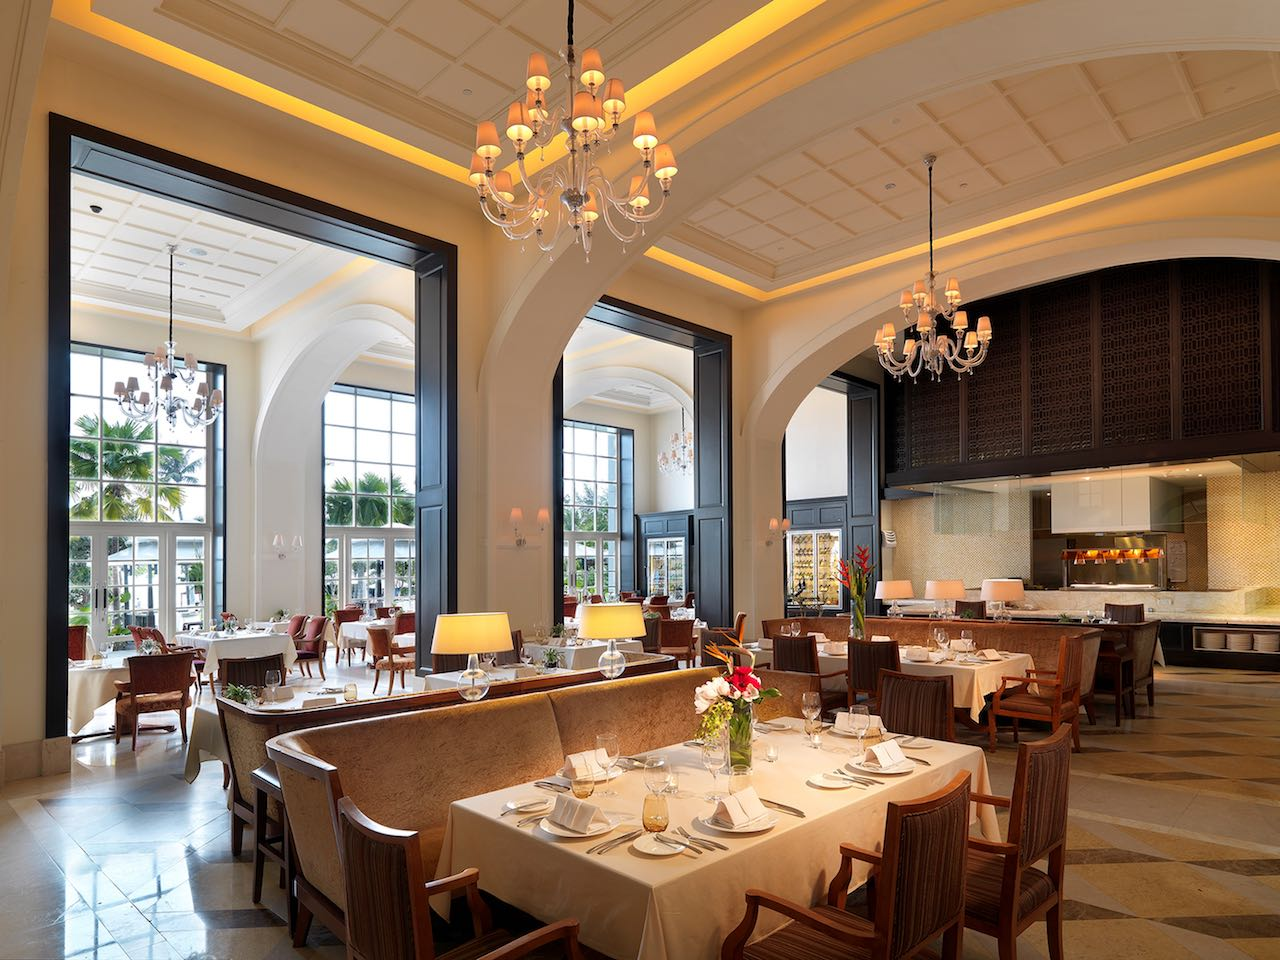 The Danna Langkawi, Malaysia - The Planter's is a fine dining serving champagne breakfast and local and European gourmet for dinner